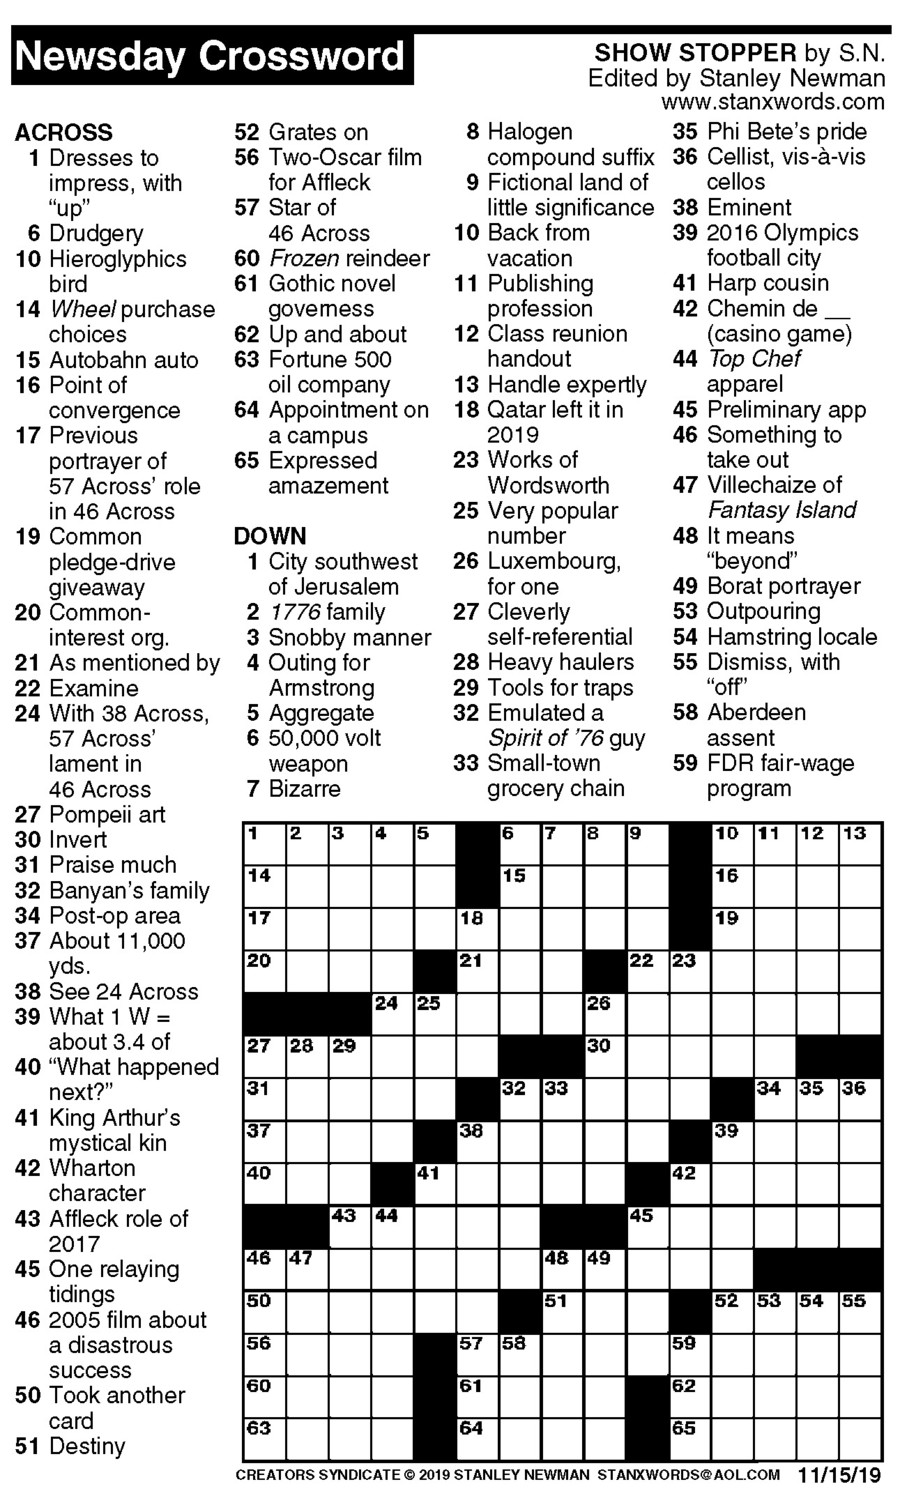 Newsday Crossword Puzzle for Nov 15, 2019